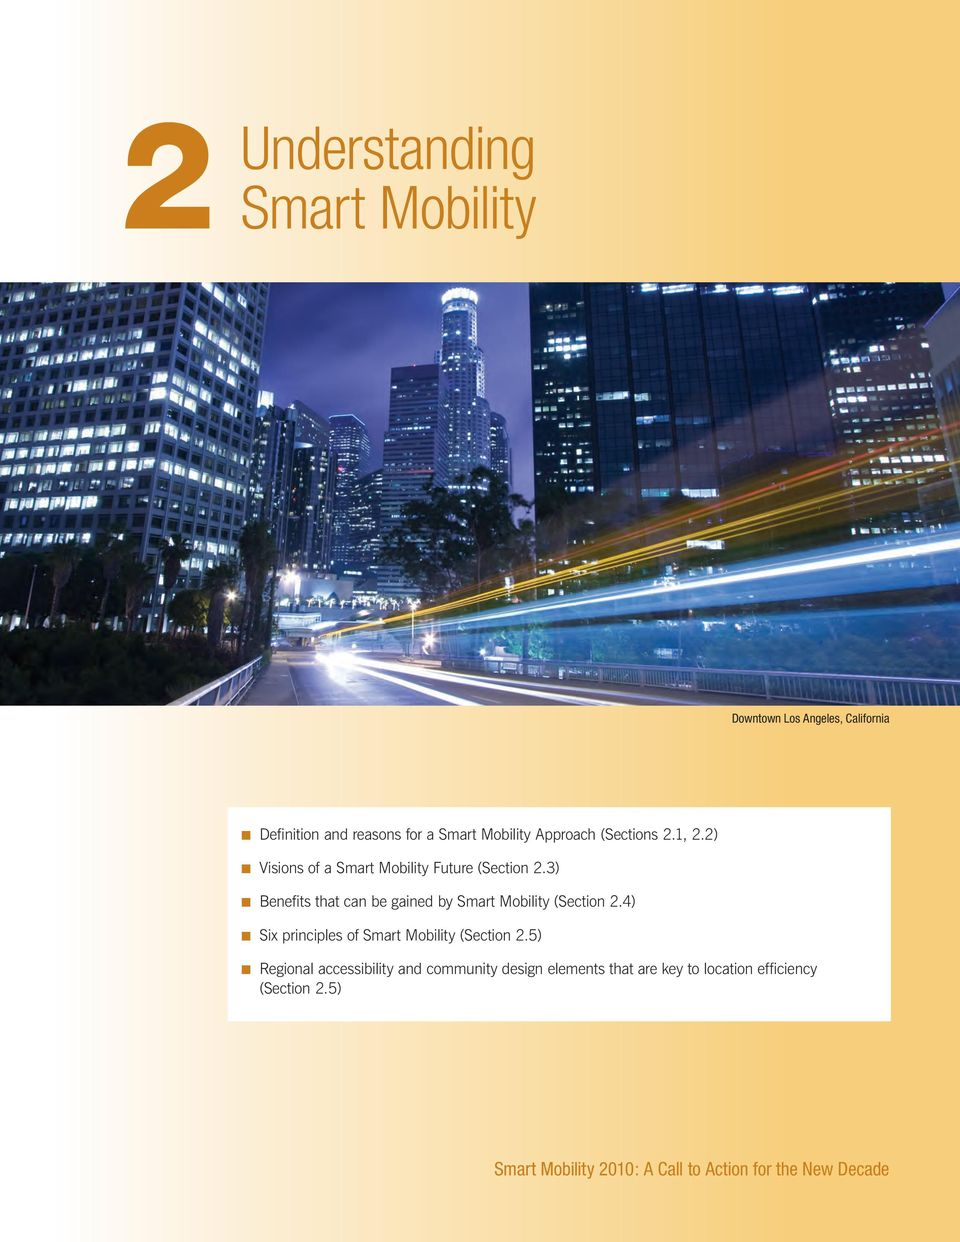 3) n Benefits that can be gained by Smart Mobility (Section 2.